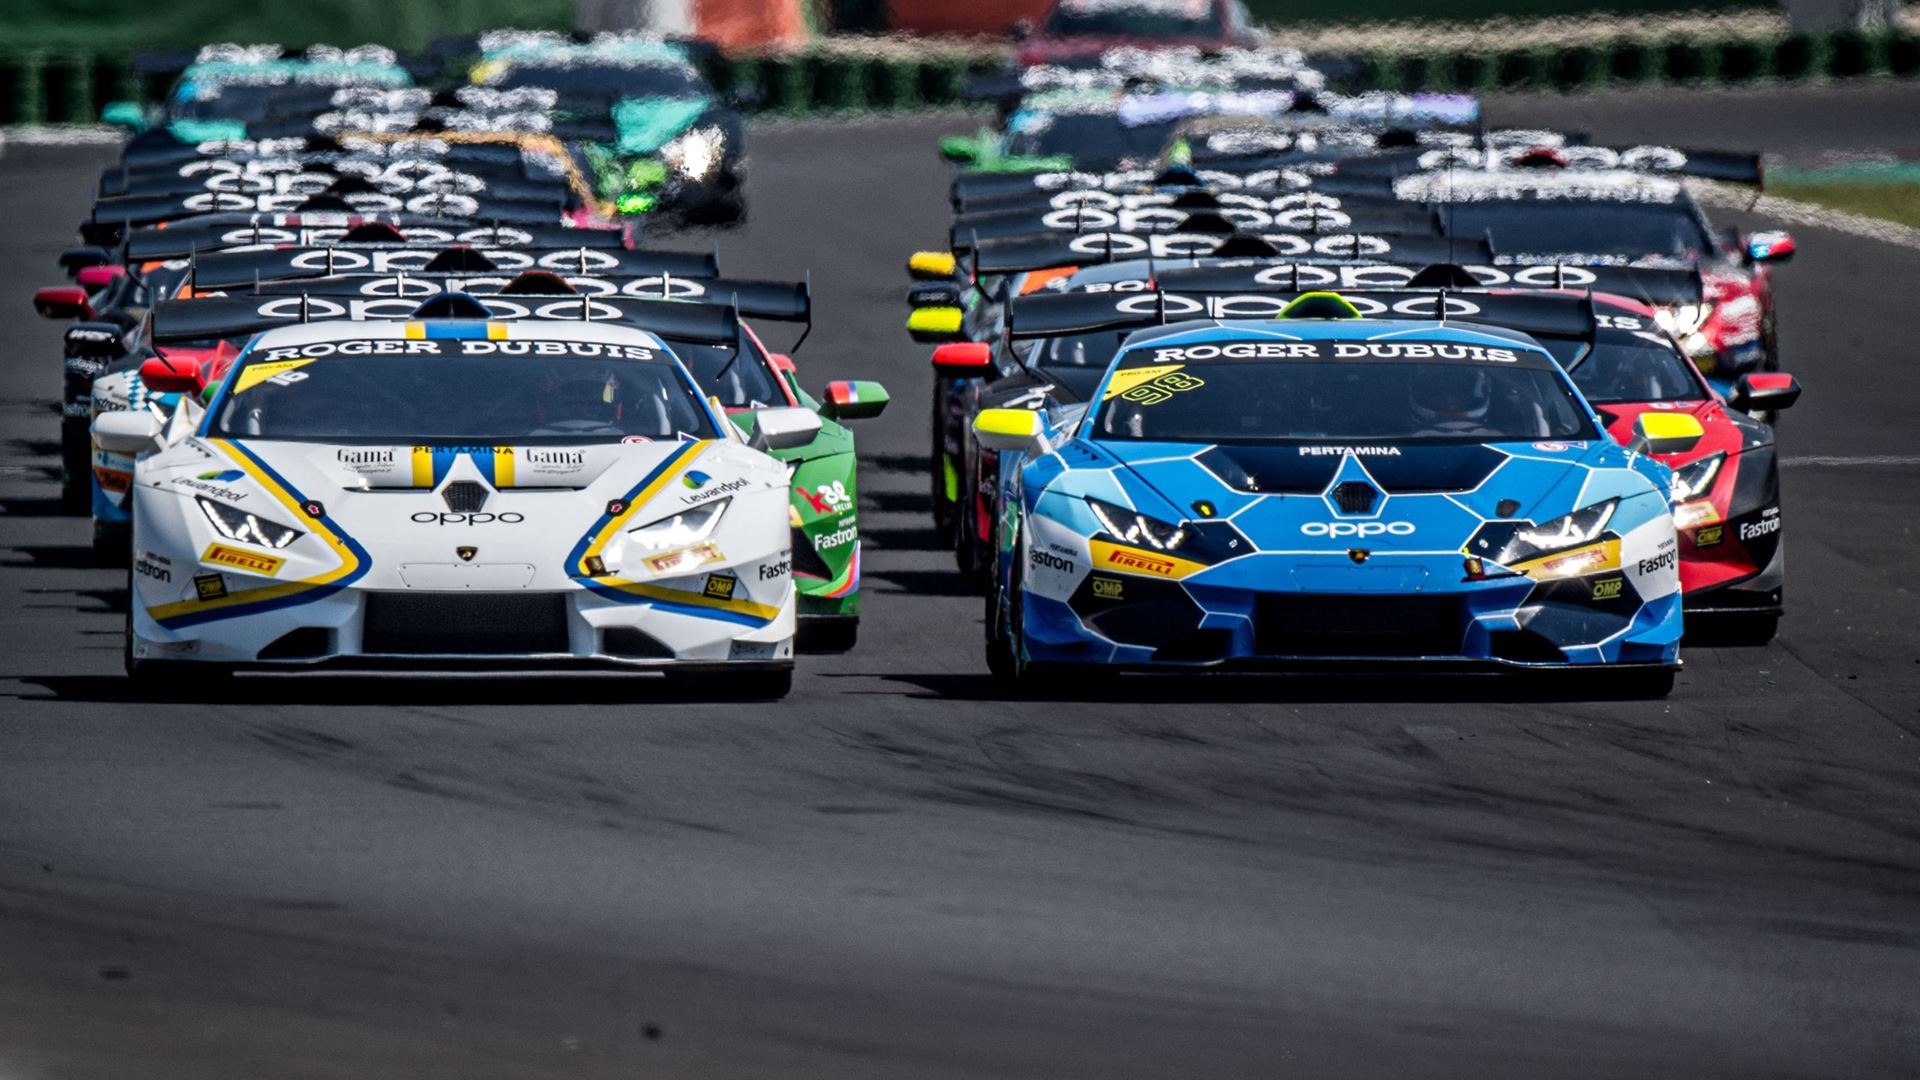 #Focu5on: the 5 things you don't know about Lamborghini Super Trofeo - Image 7